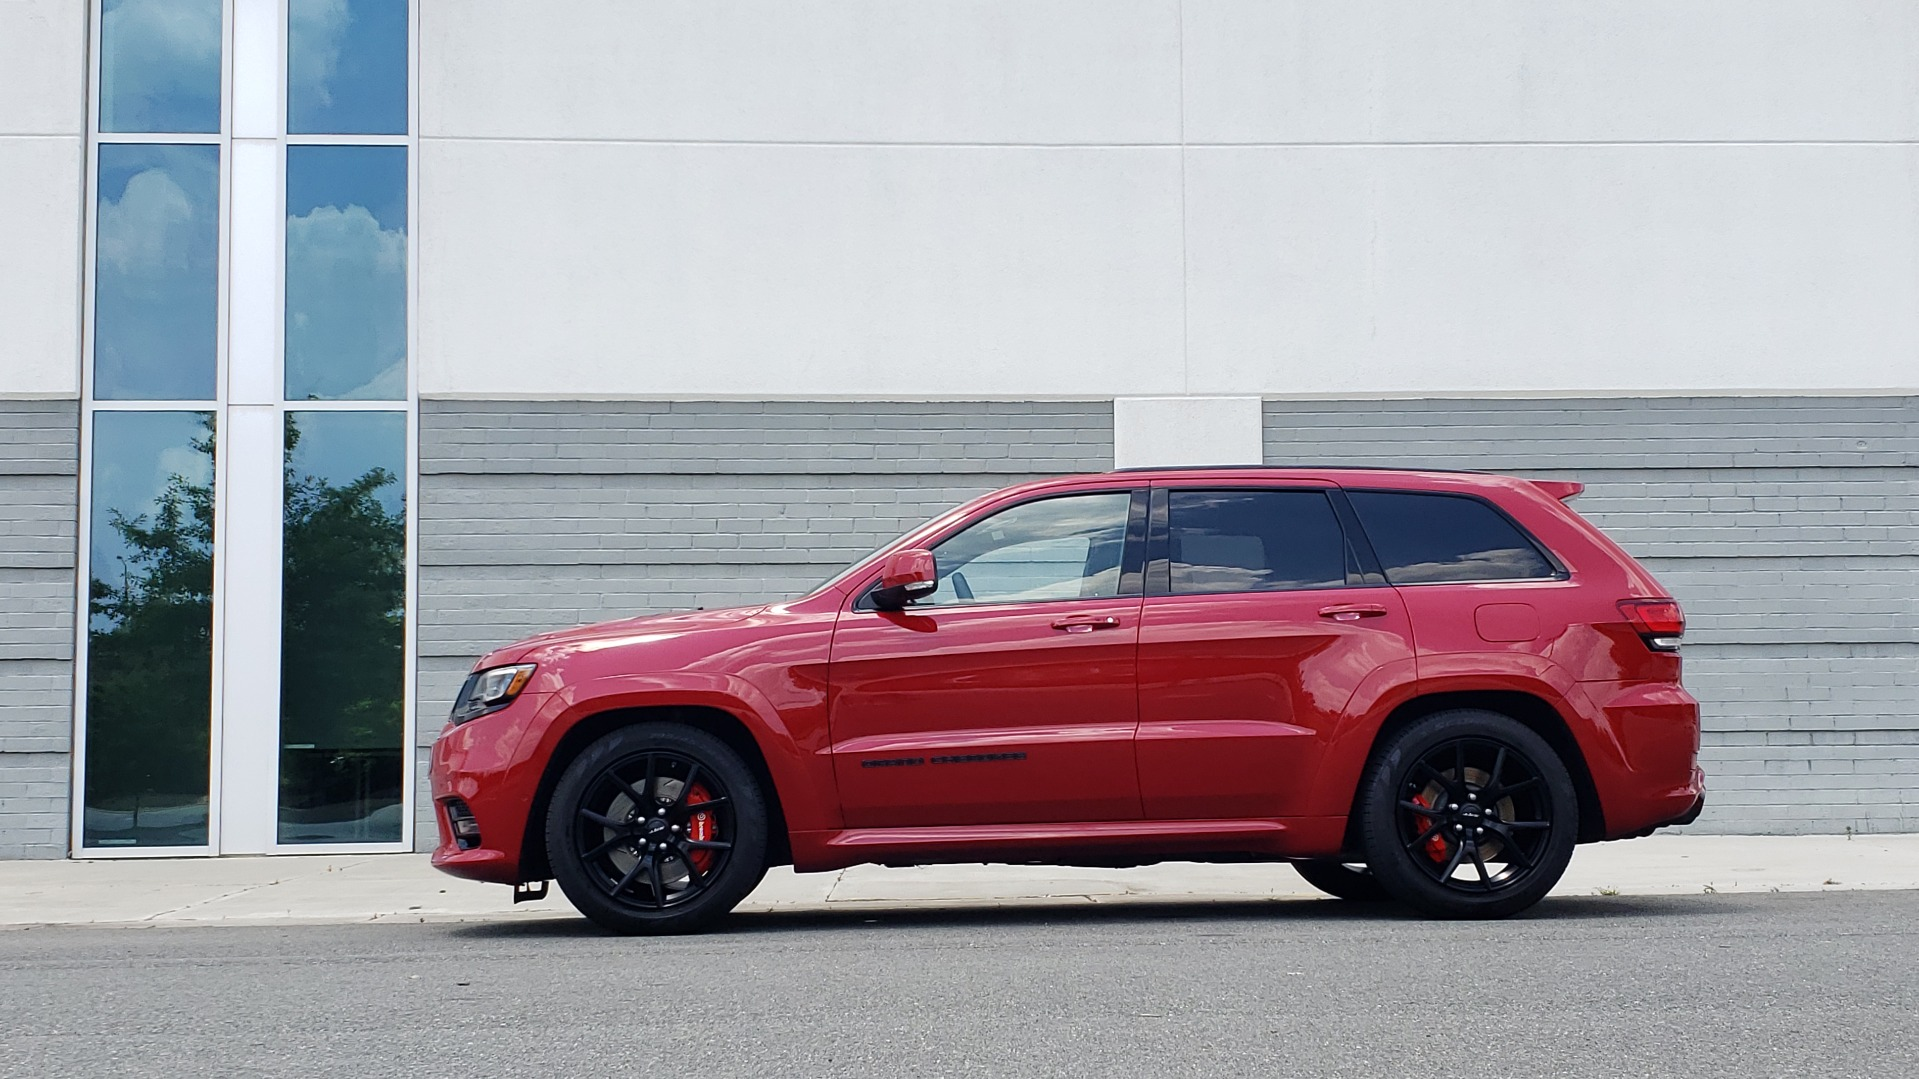 Used 2018 Jeep GRAND CHEROKEE SRT 4X4 / 6.4L HEMI (475HP) / NAV / SUNROOF / H/K SND / REARVIEW for sale Sold at Formula Imports in Charlotte NC 28227 3